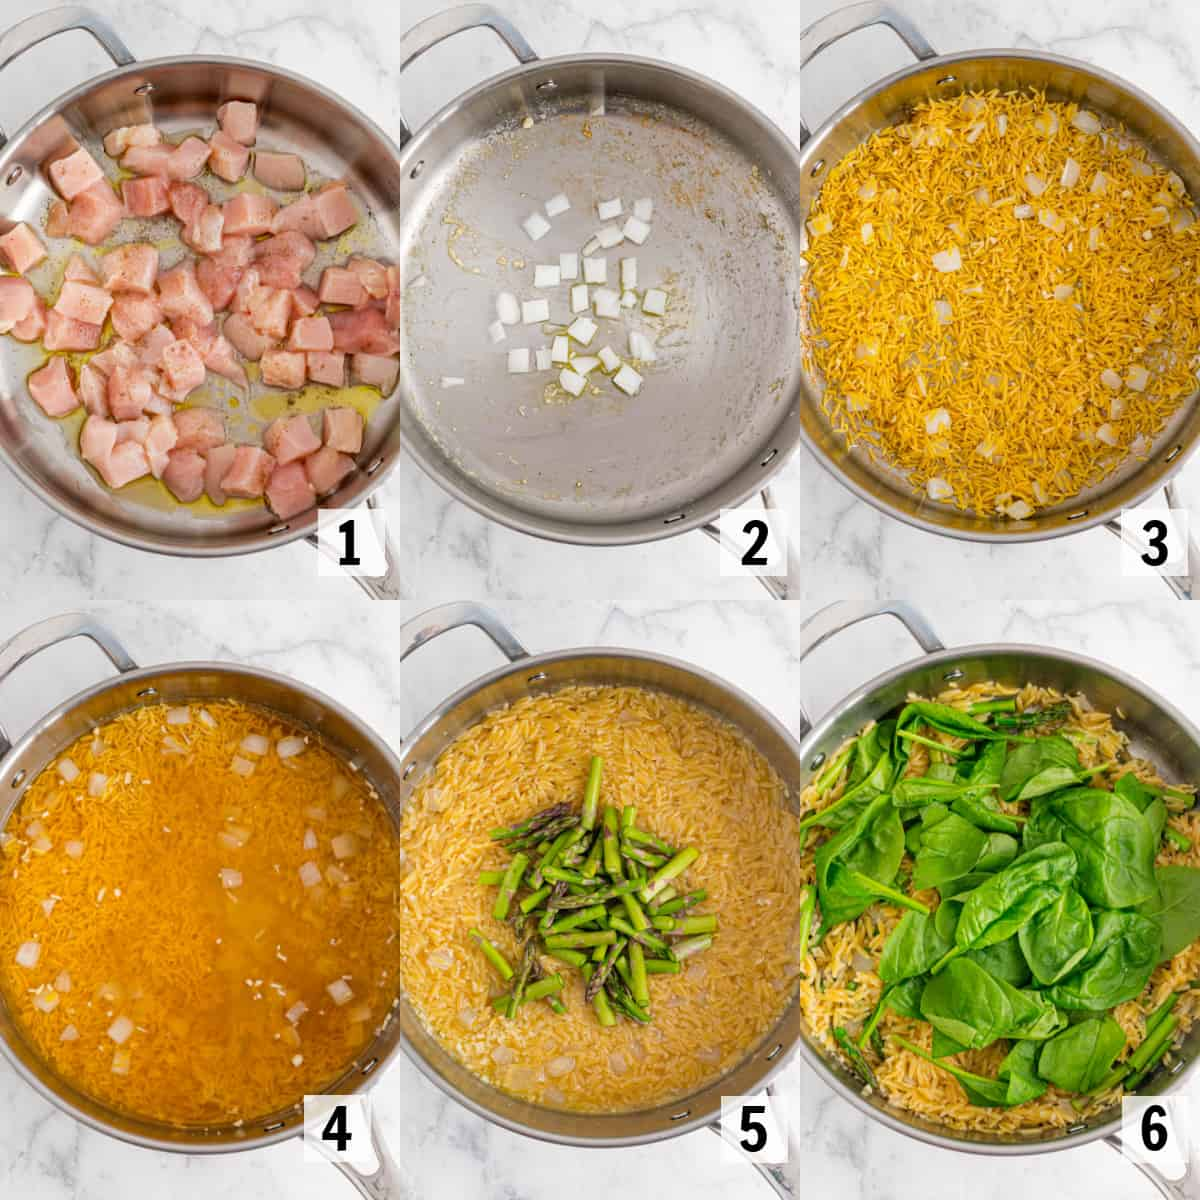 cooking ingredients for lemon chicken orzo in a skillet